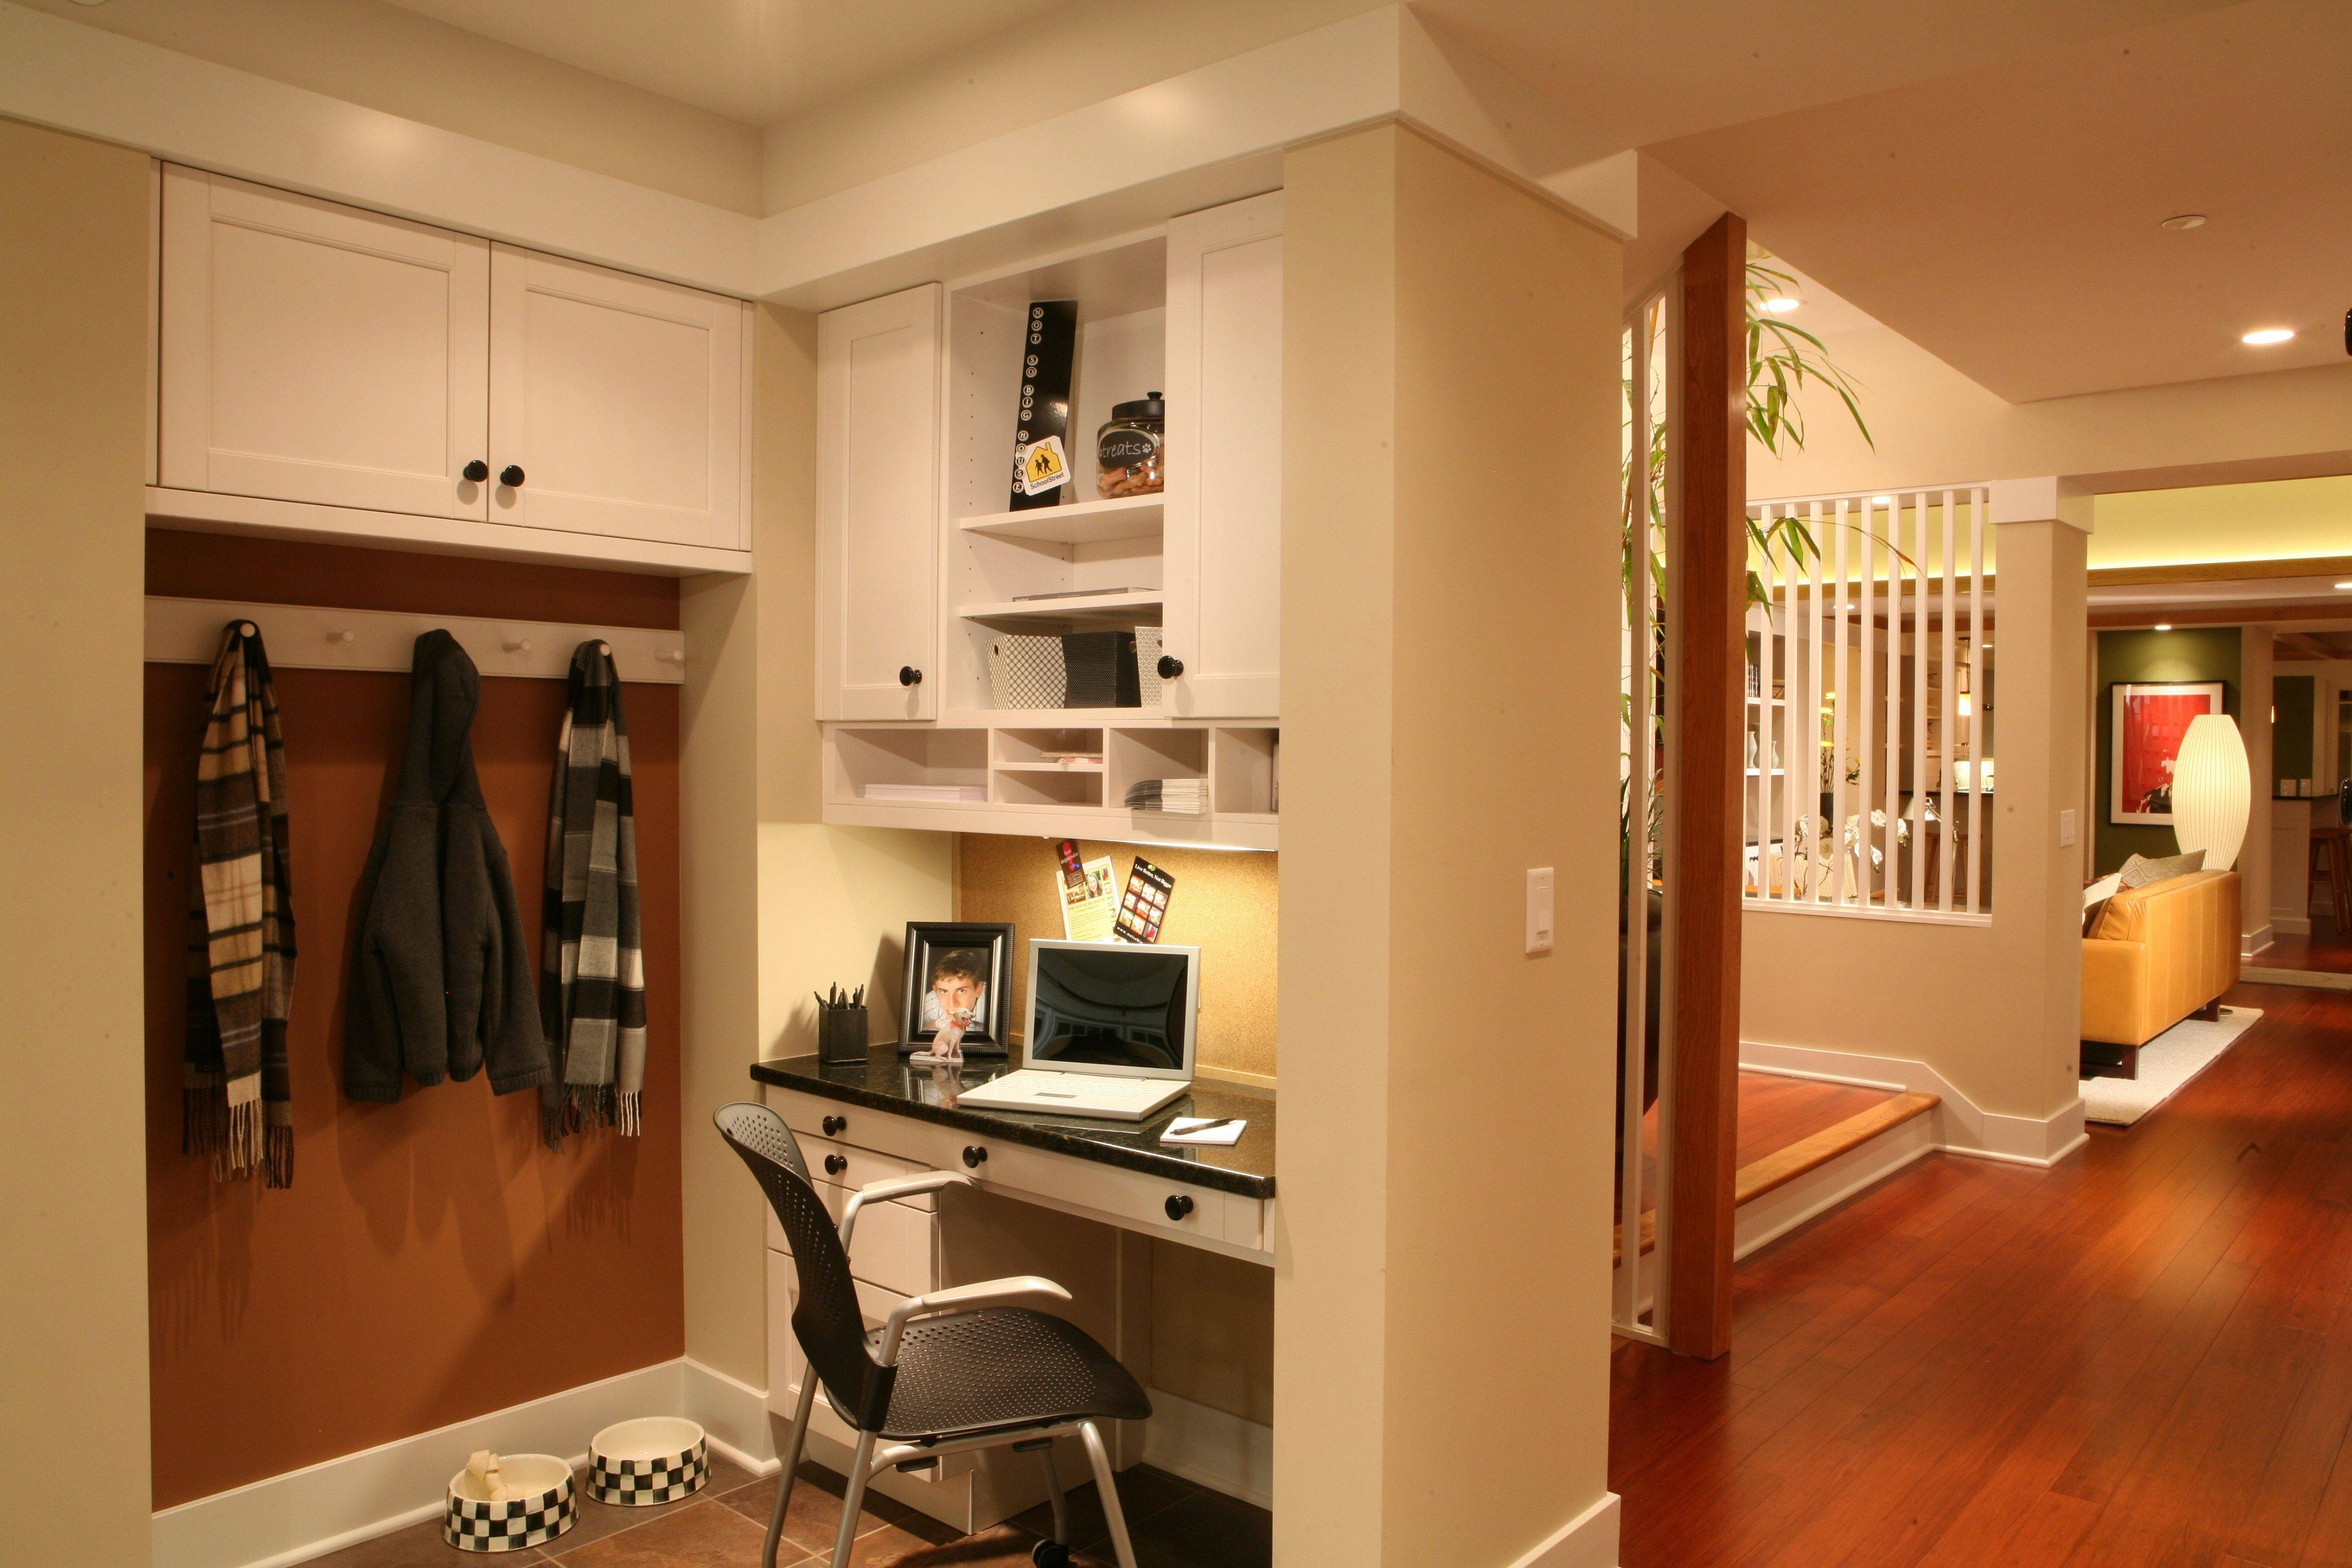 The mud room helps with home organization.